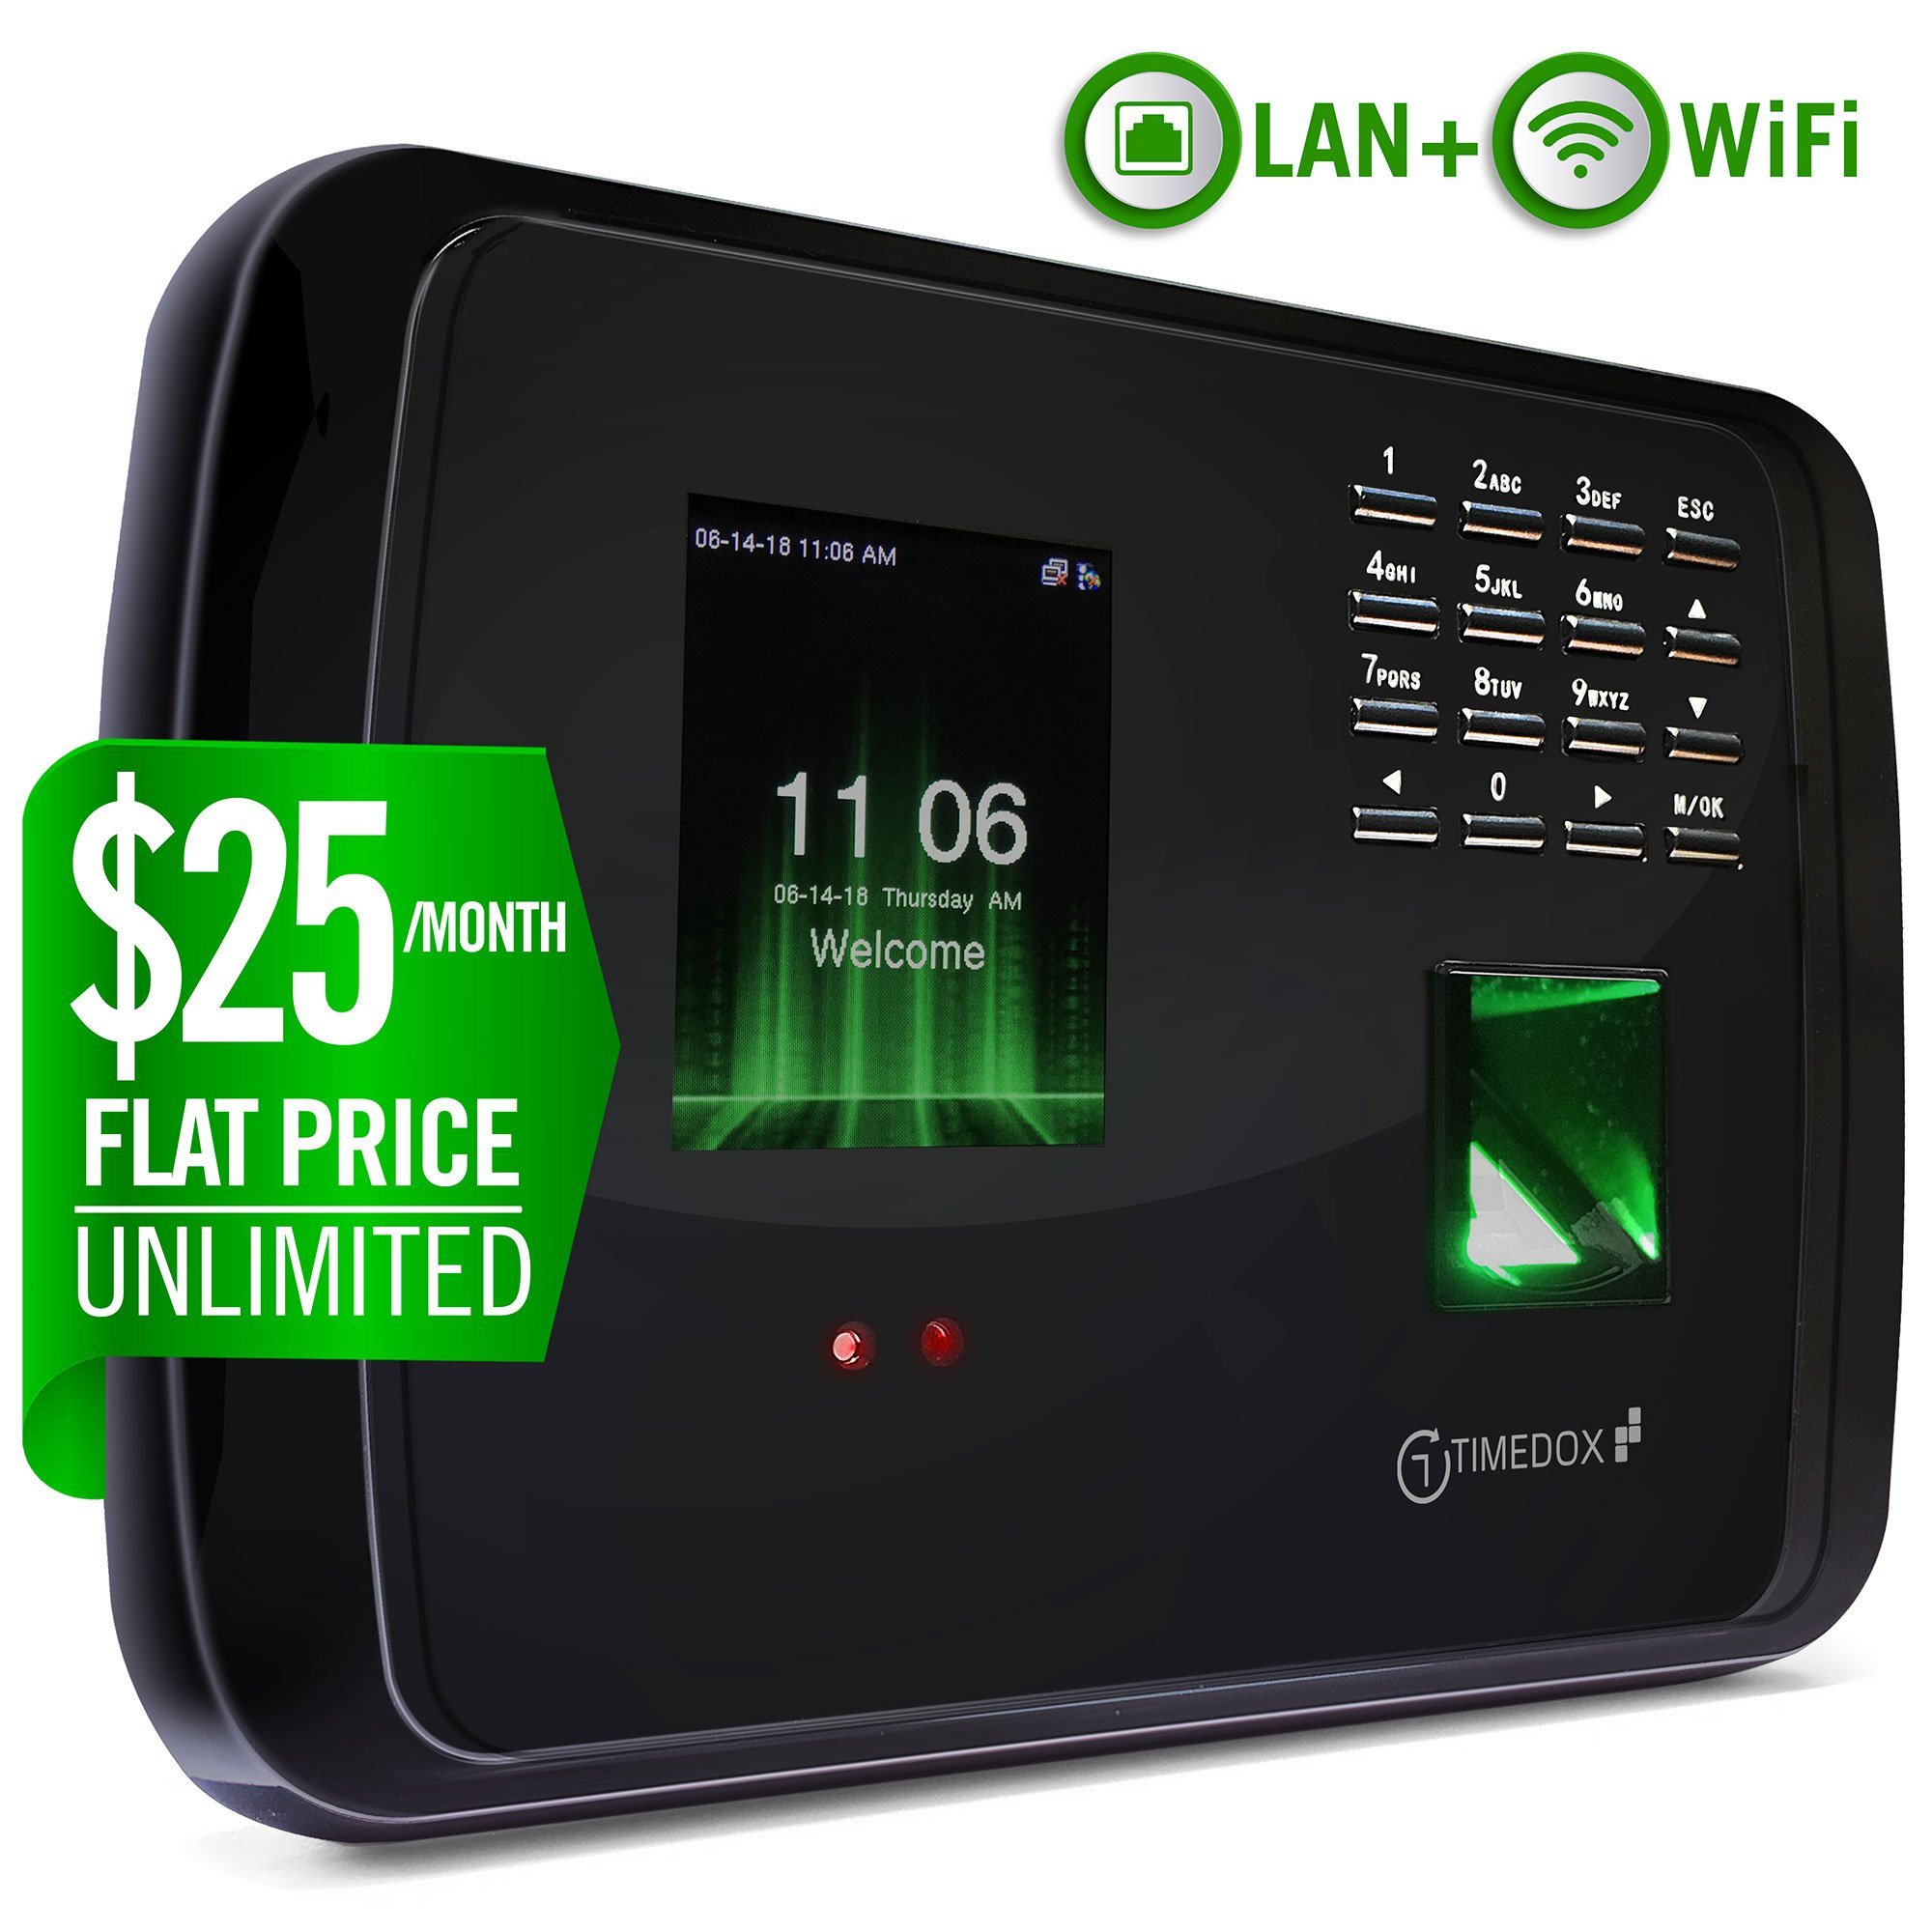 Timedox Tandem Pro WiFi/LAN Biometric Time Clock | $25/Month Unlimited Employees & Adminis Support | Login from Anywhere, Anytime Real-Time Cloud Attendance Solution by Timedox